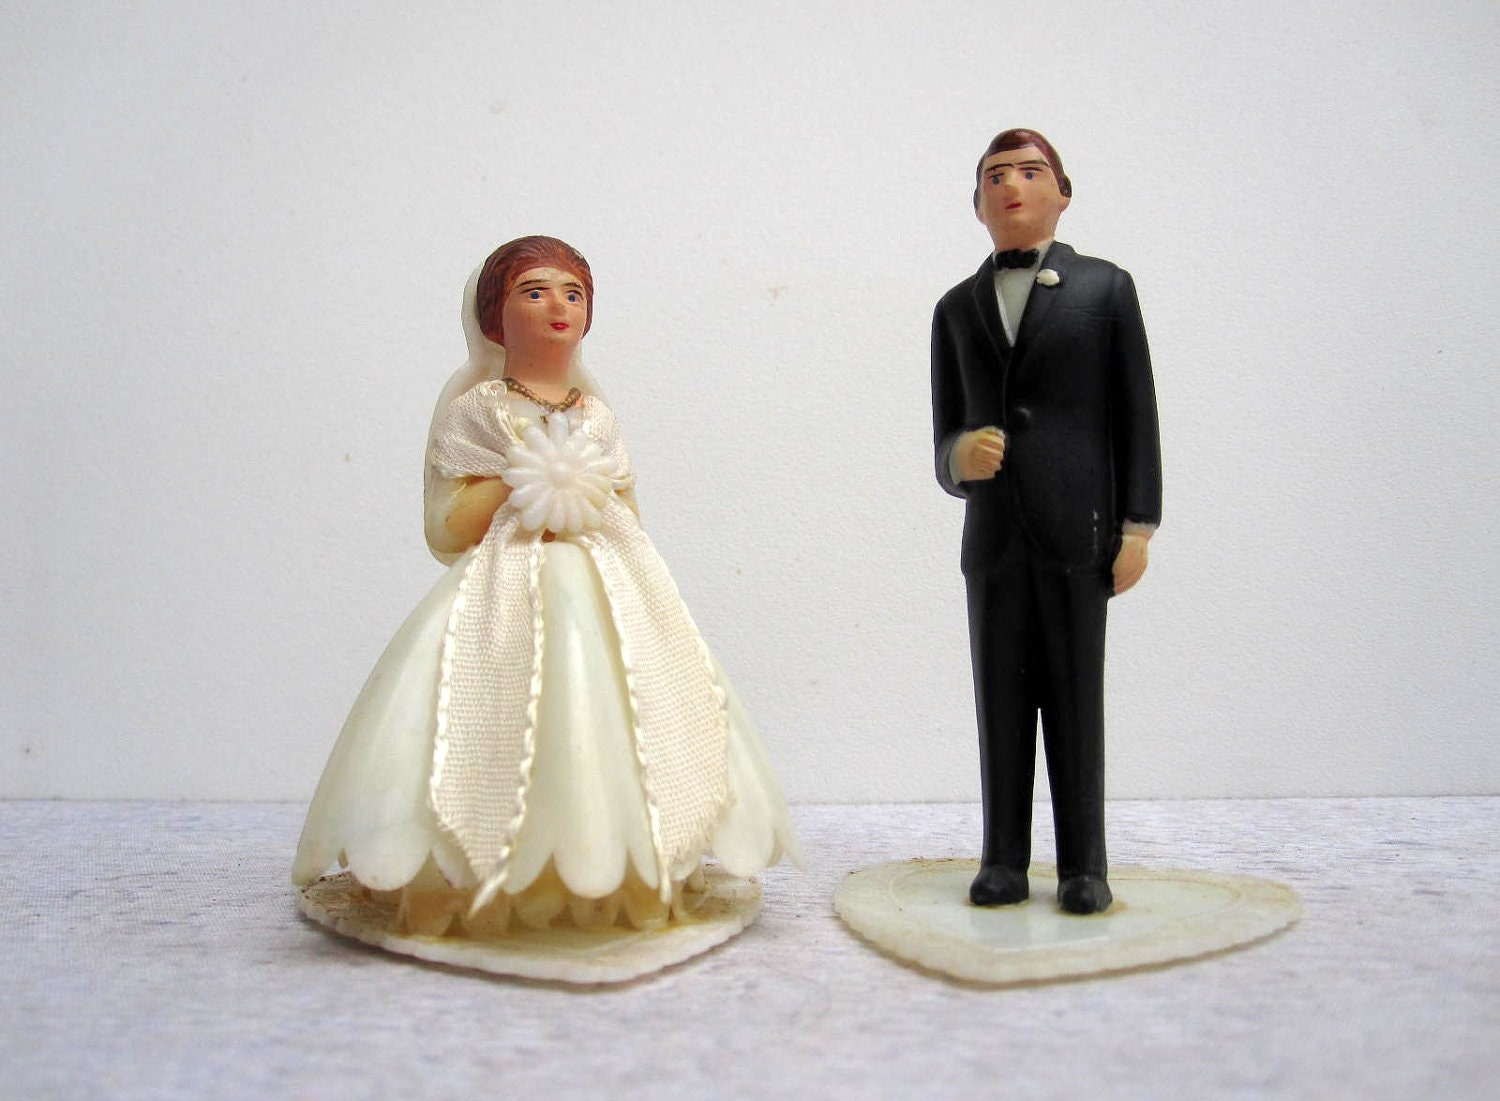 Vintage Wedding Cake Topper Traditional Bride and Groom on